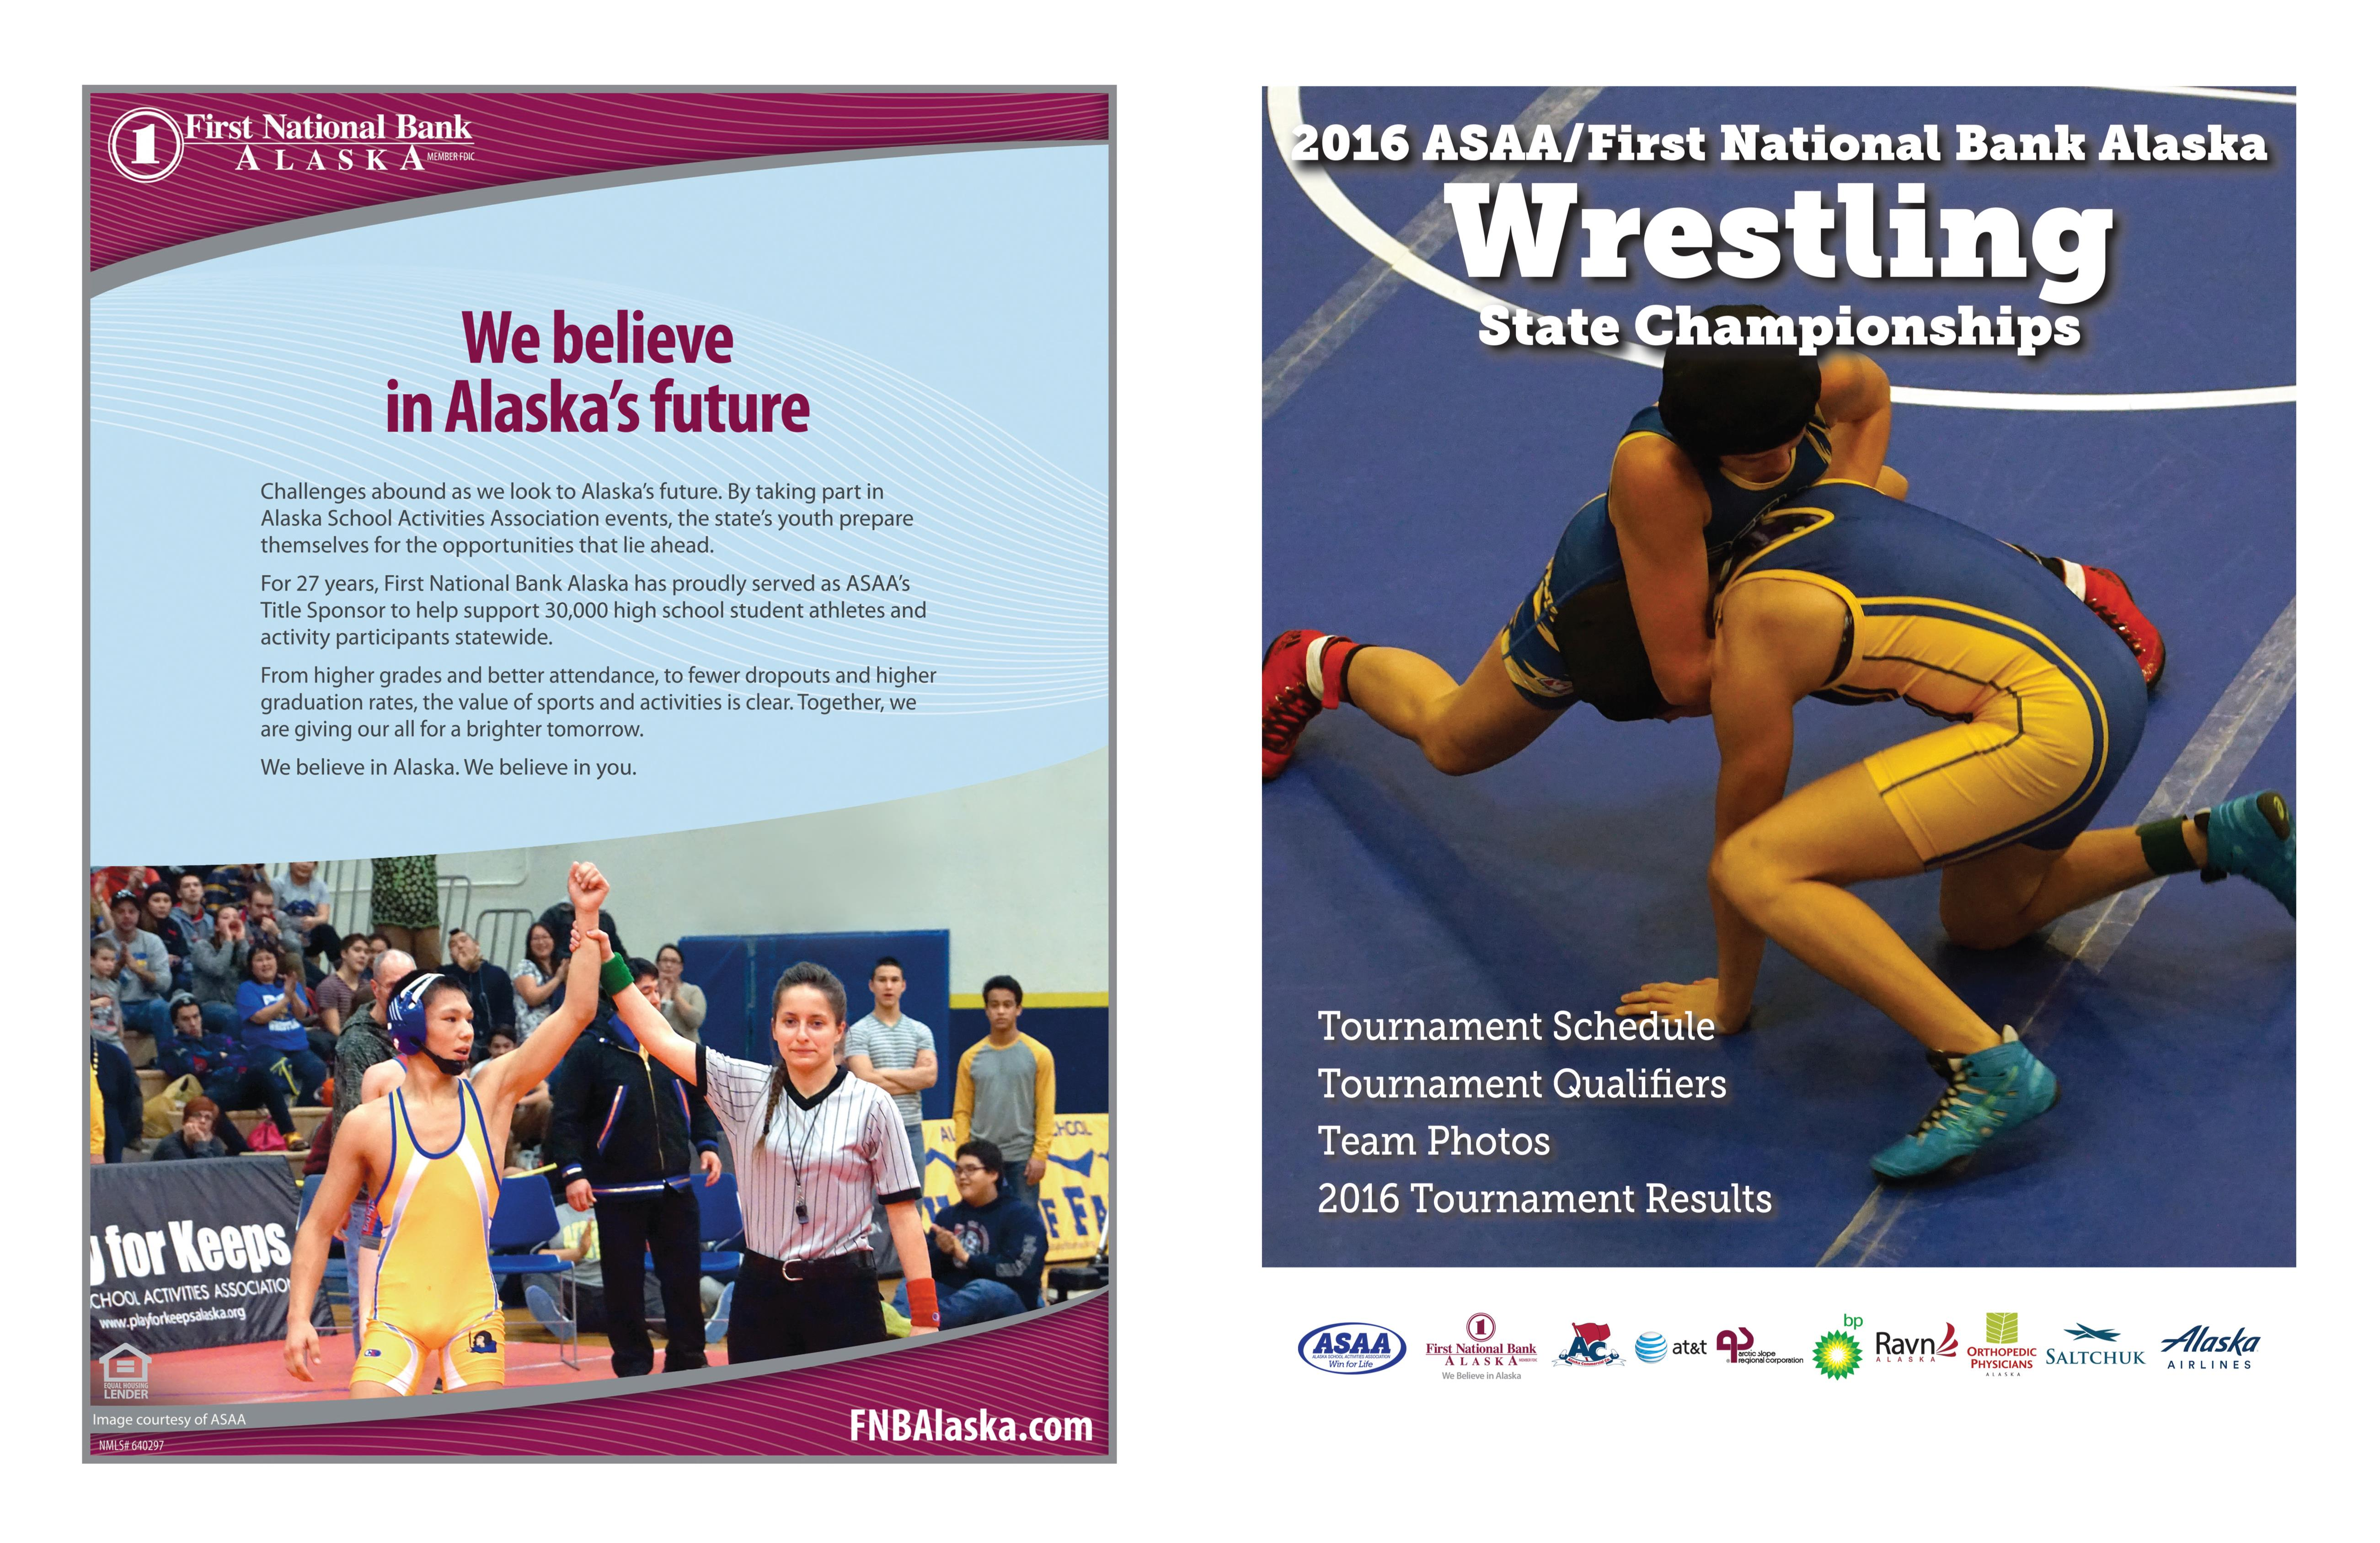 2016 ASAA/First National Bank Alaska Wrestling State Championships Program cover image